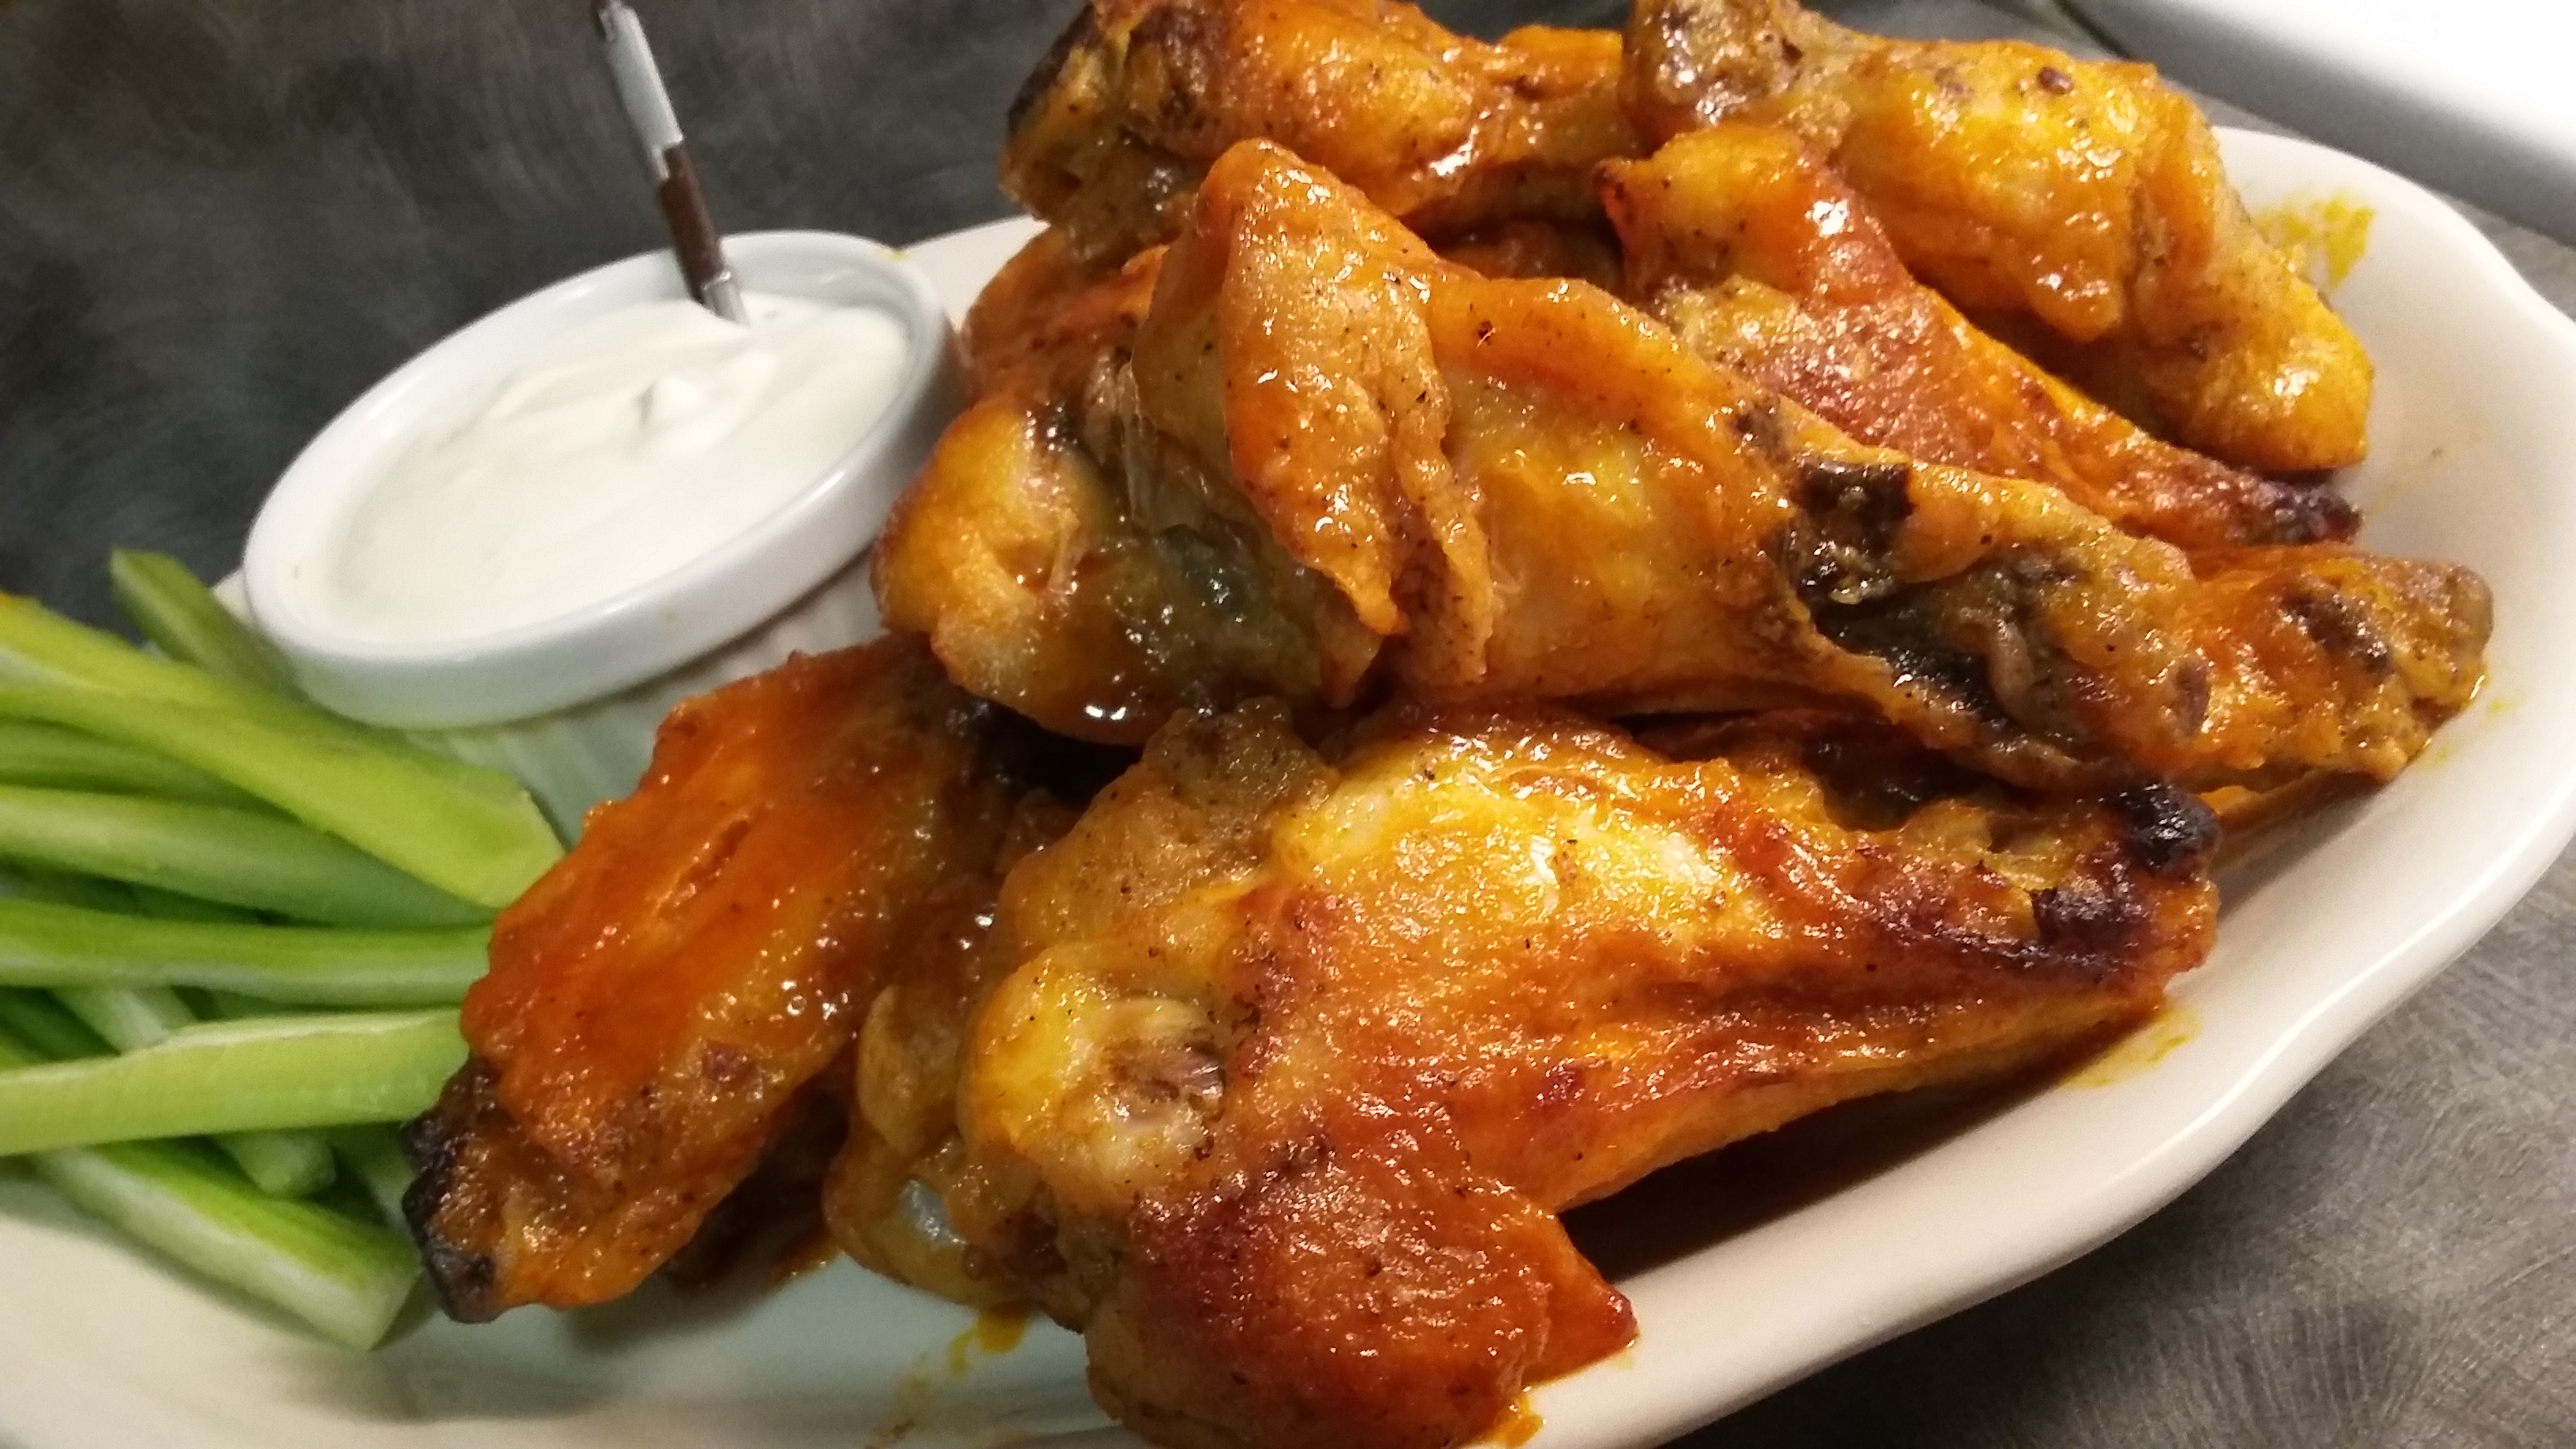 Scott's Coast-to-Coast Famous Chicken Wings sheribdb